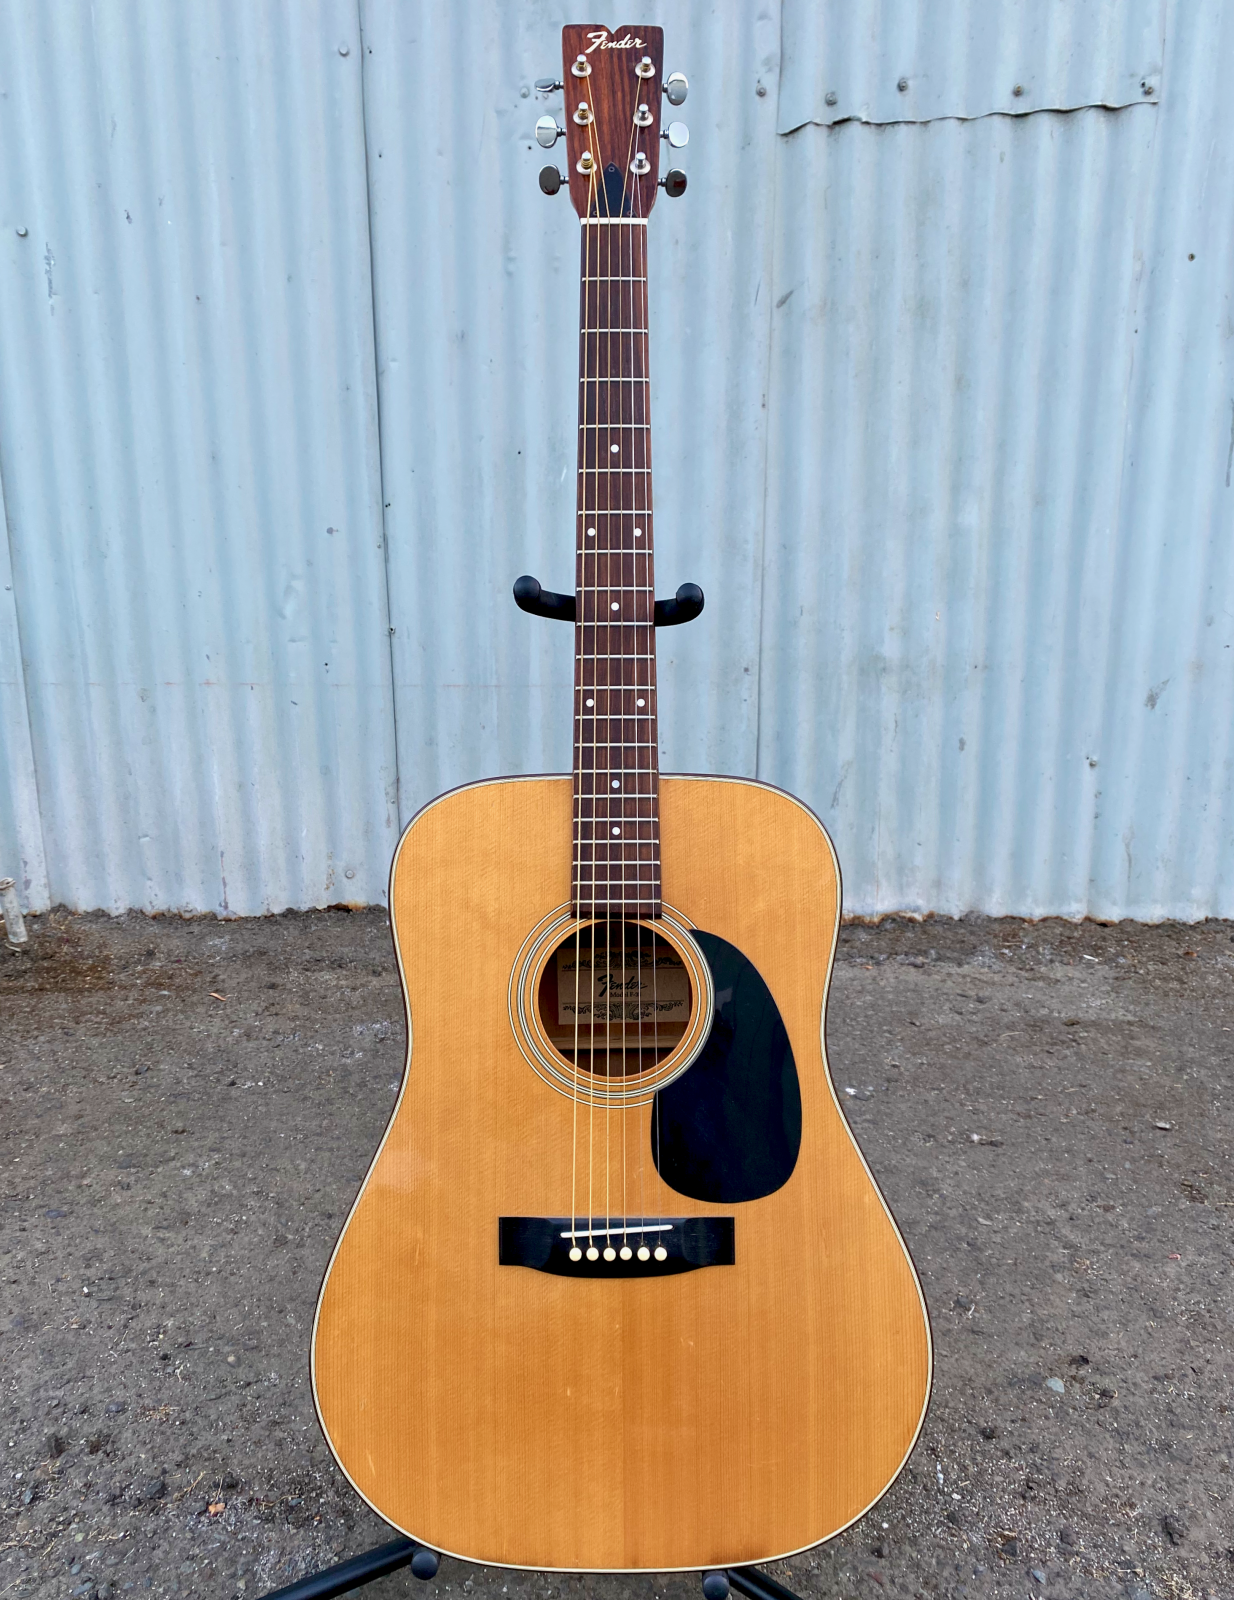 FENDER F-35 ACOUSTIC GUITAR WITH BAG